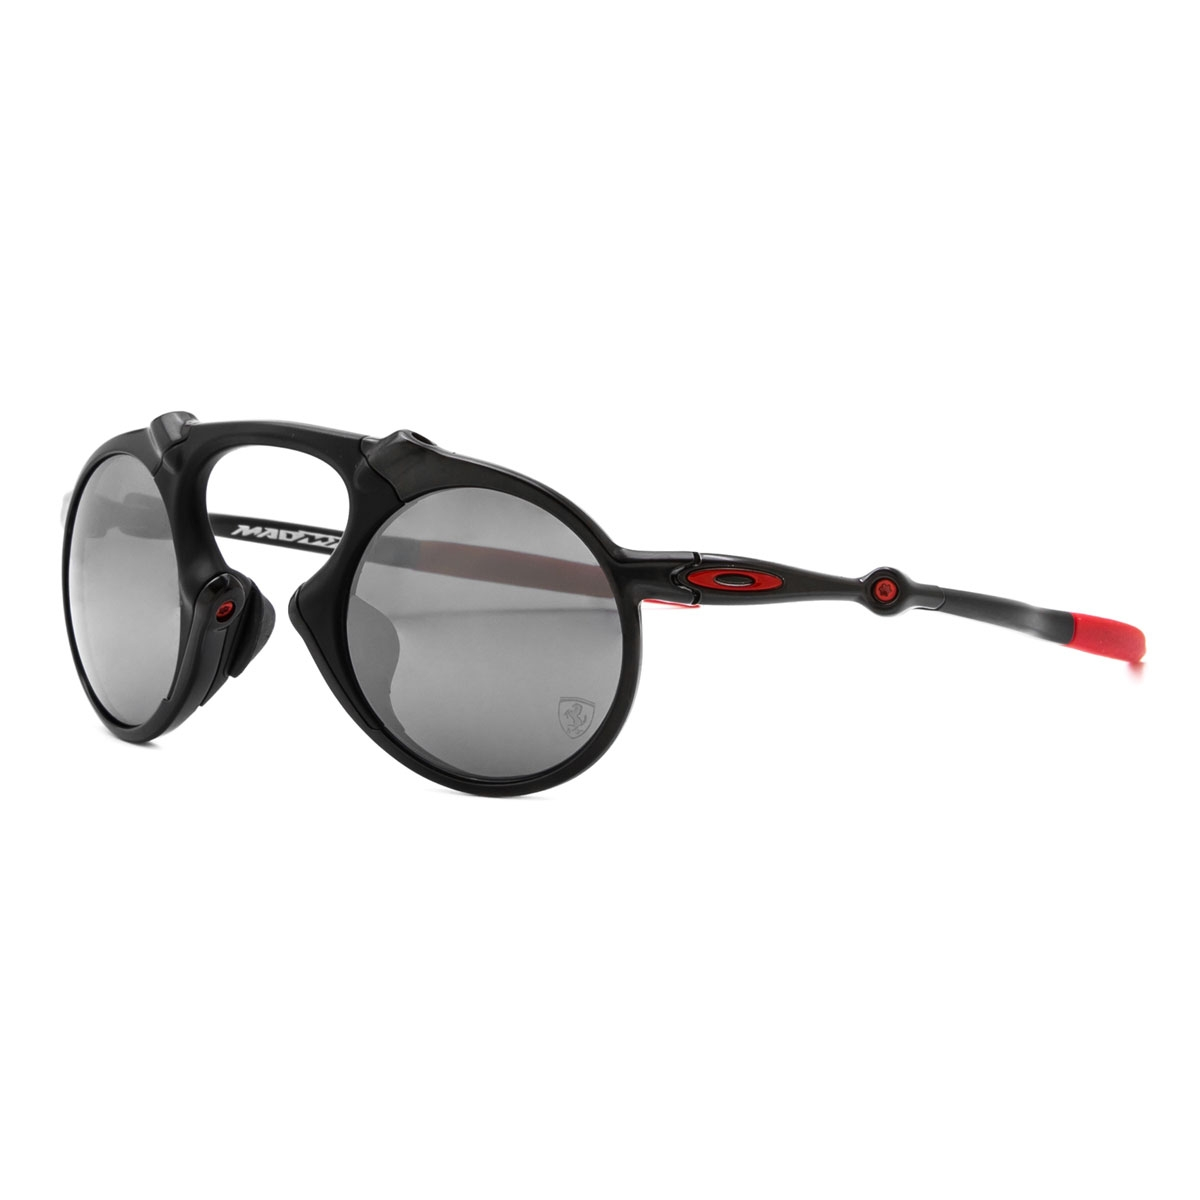 3fe550b0e5 Image of Oakley Madman Scuderia Ferrari Collection Polarized Sunglasses -  Dark Carbon Frame Black Iridium